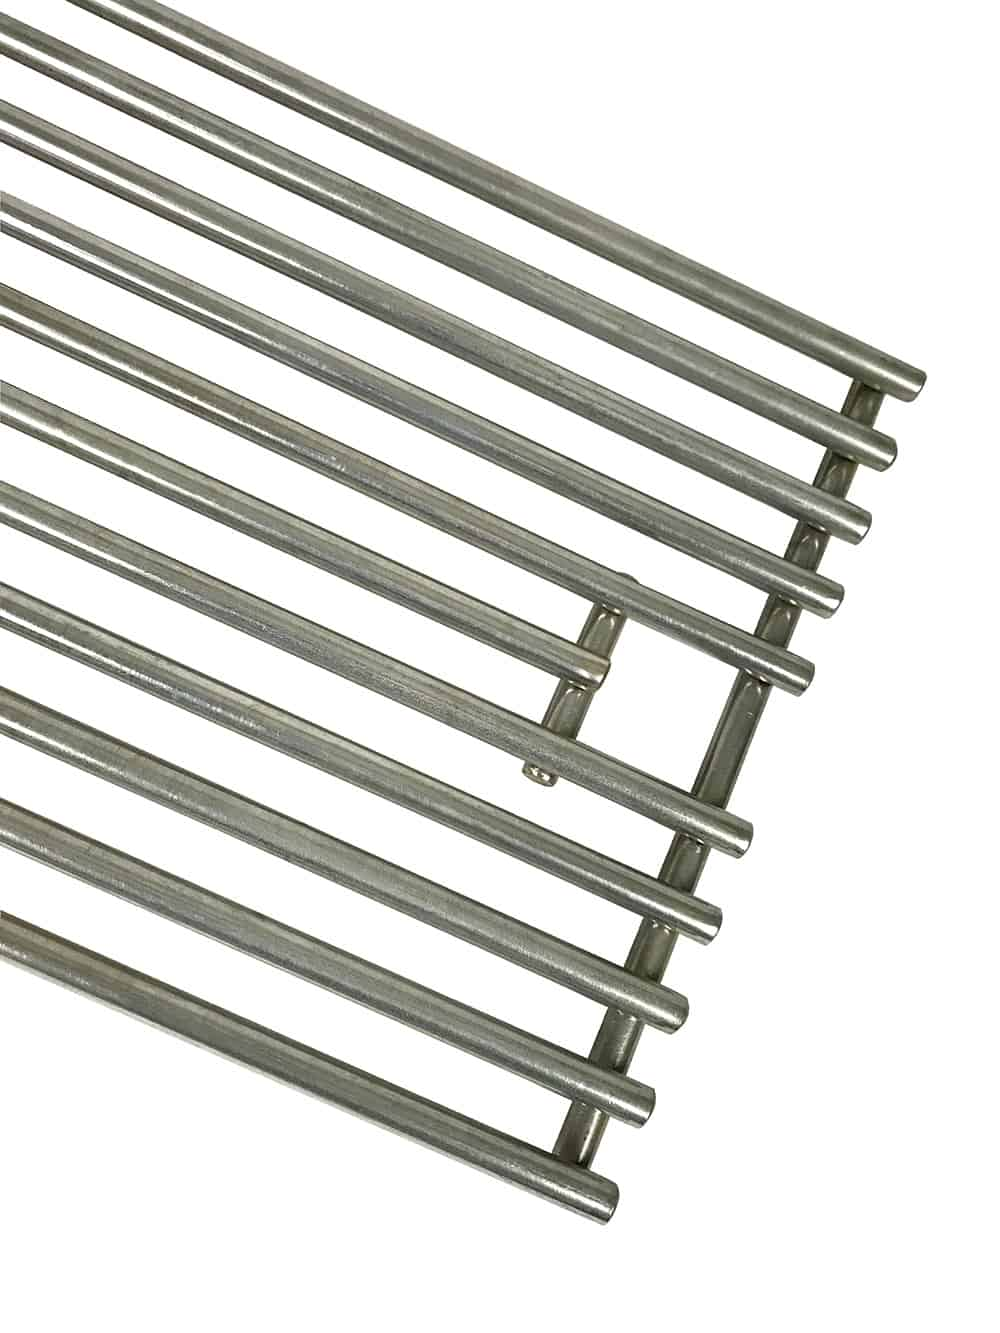 CG115SS Blaze stainless steel cooking grid